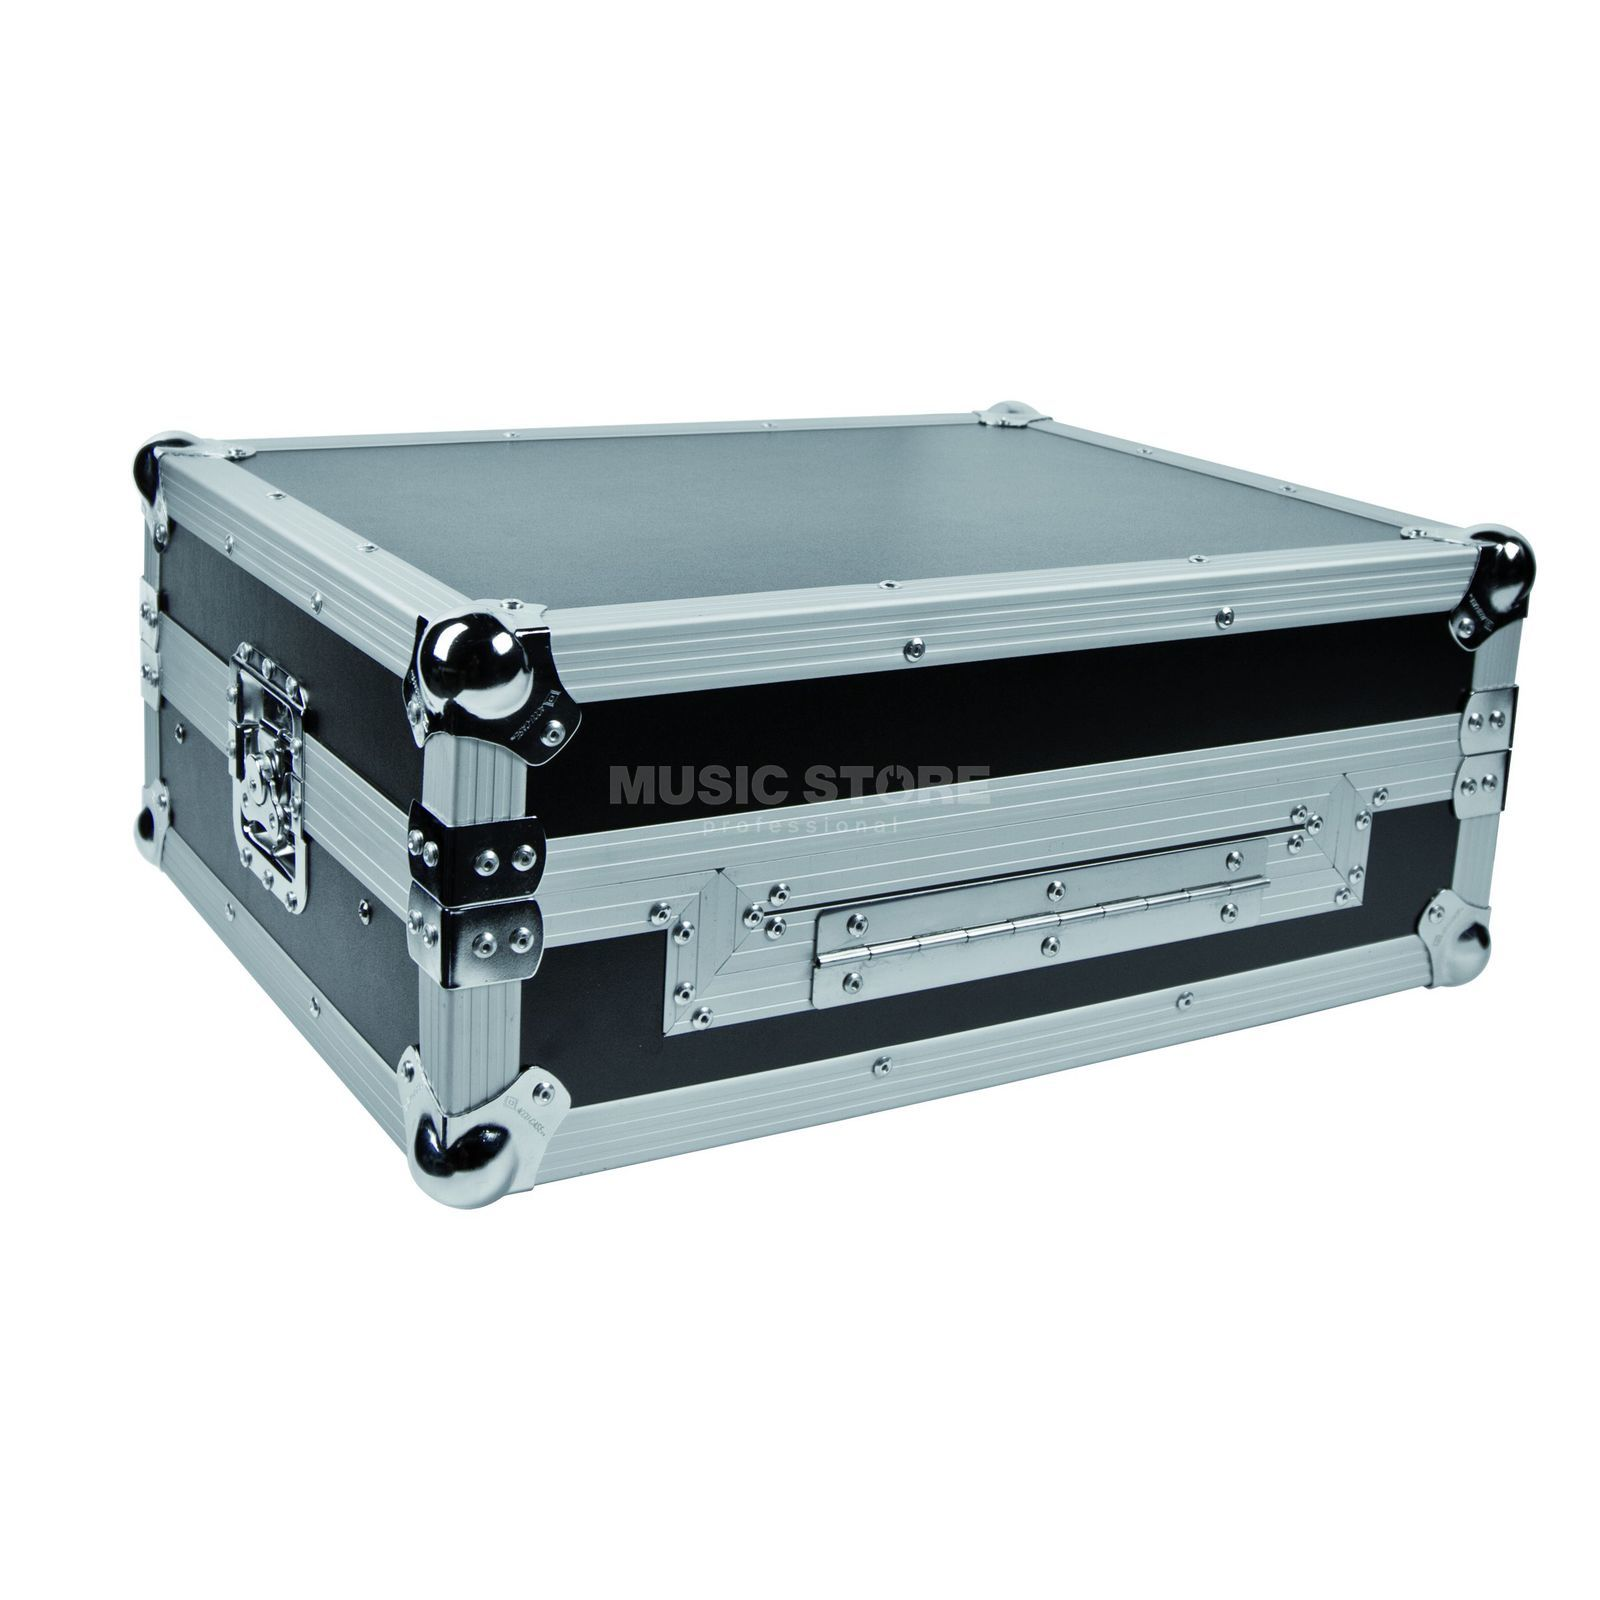 Accu Case ACF-SW/VMS4 Road Case Flightcase for VMS4 Controller Product Image